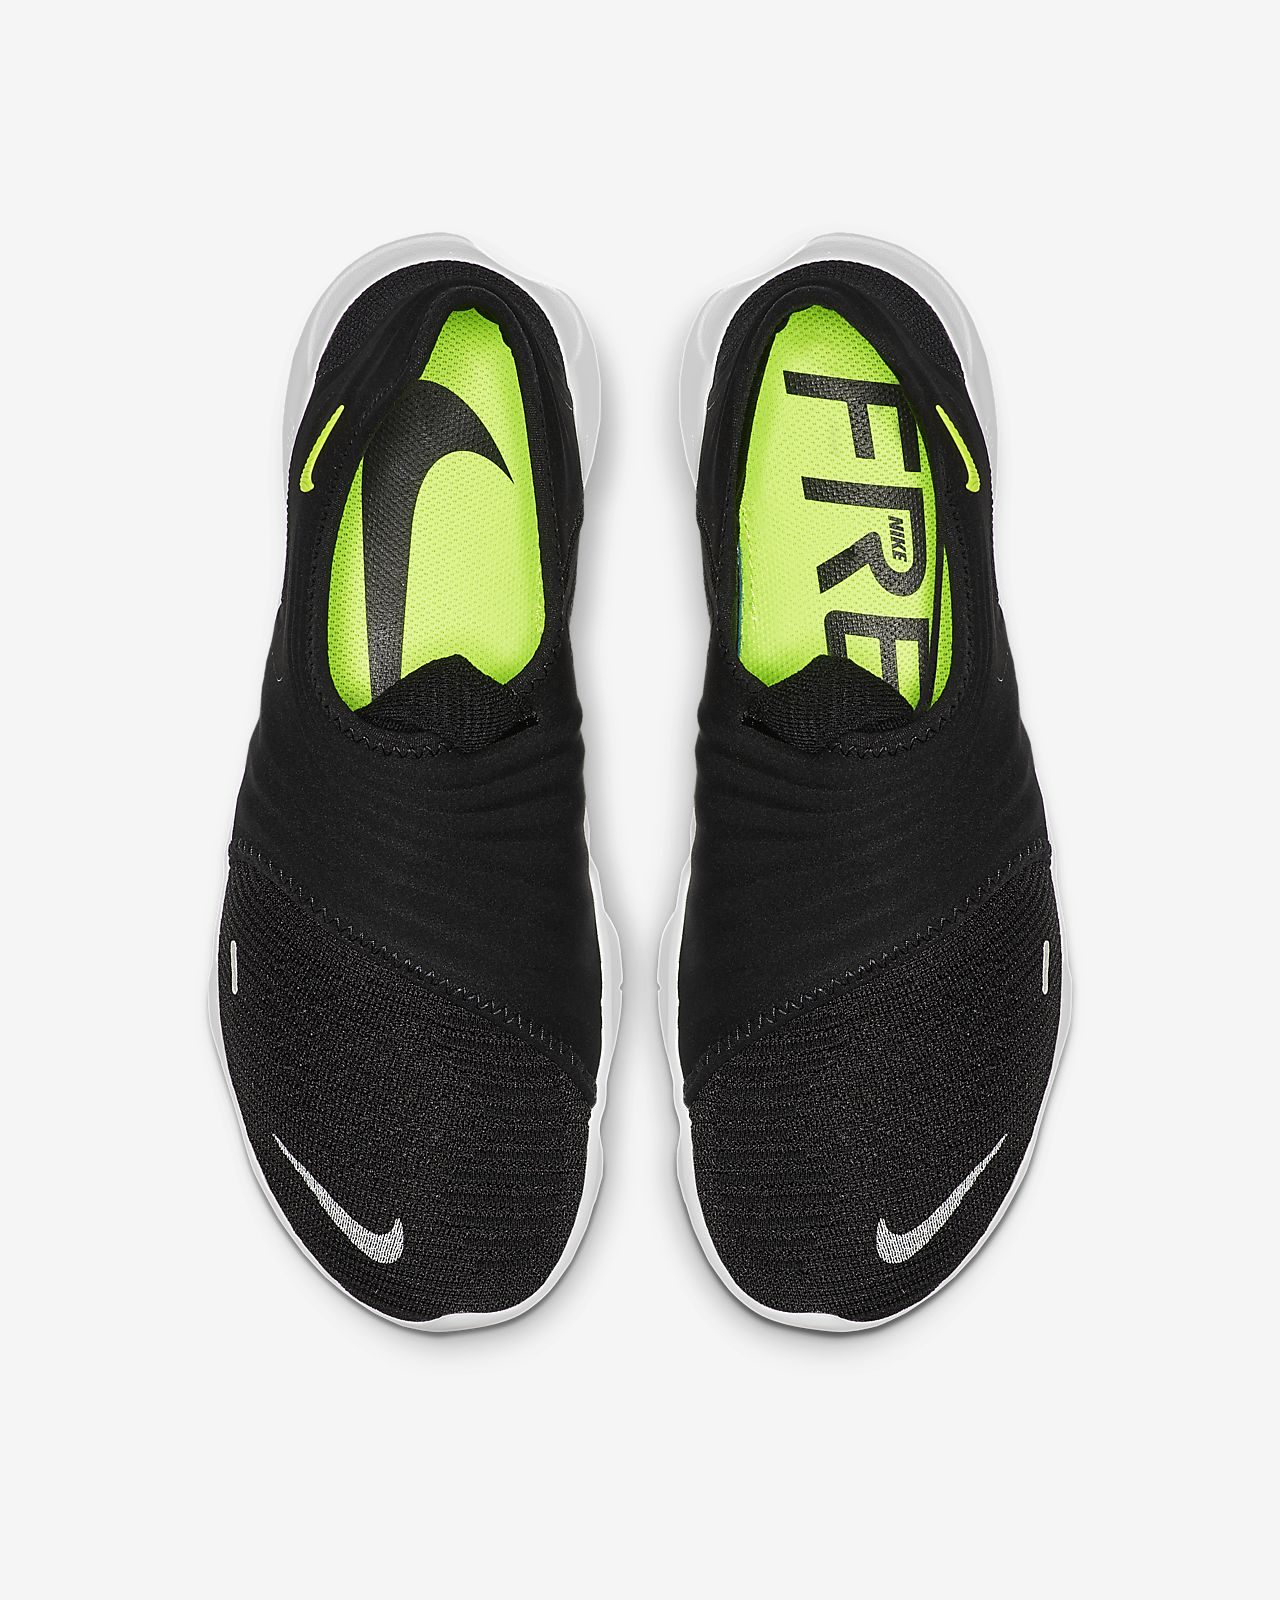 Nike Launch All New Free RN 5.0 & 3.0 Running Shoes | Complex